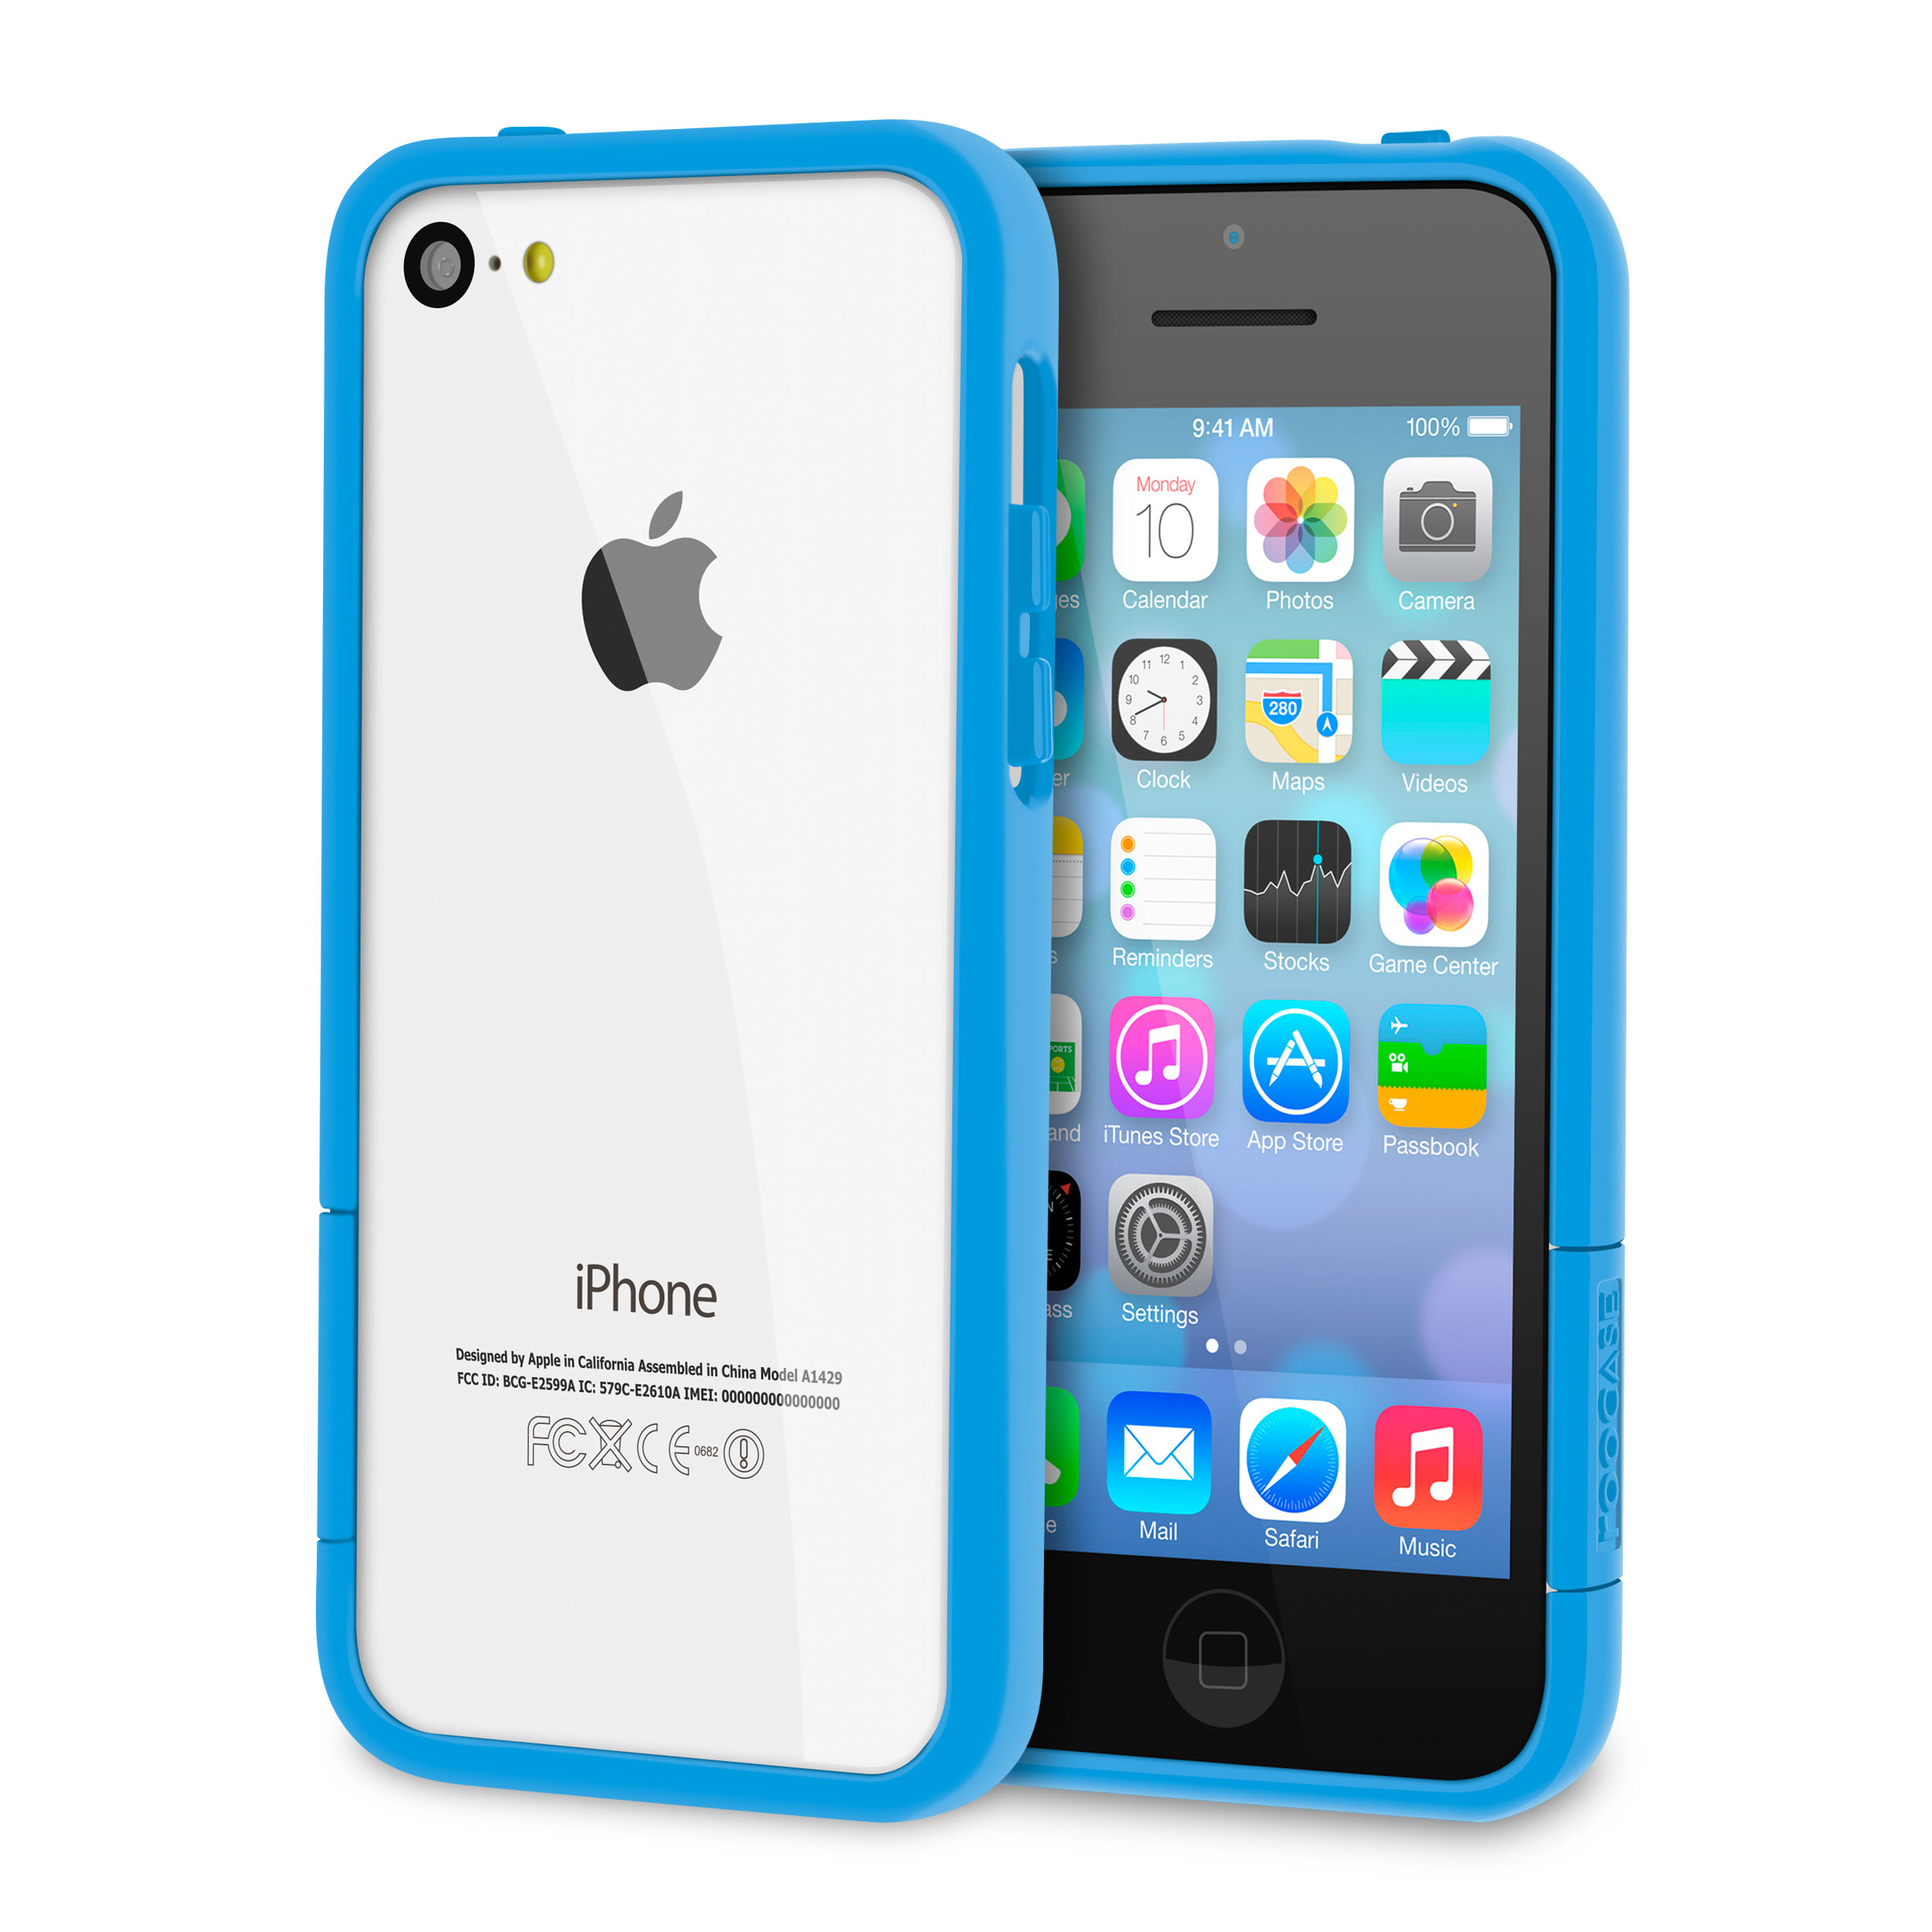 rooCASE Apple iPhone 5C ProGuard Bumper Slim Shell Case, Matte Blue